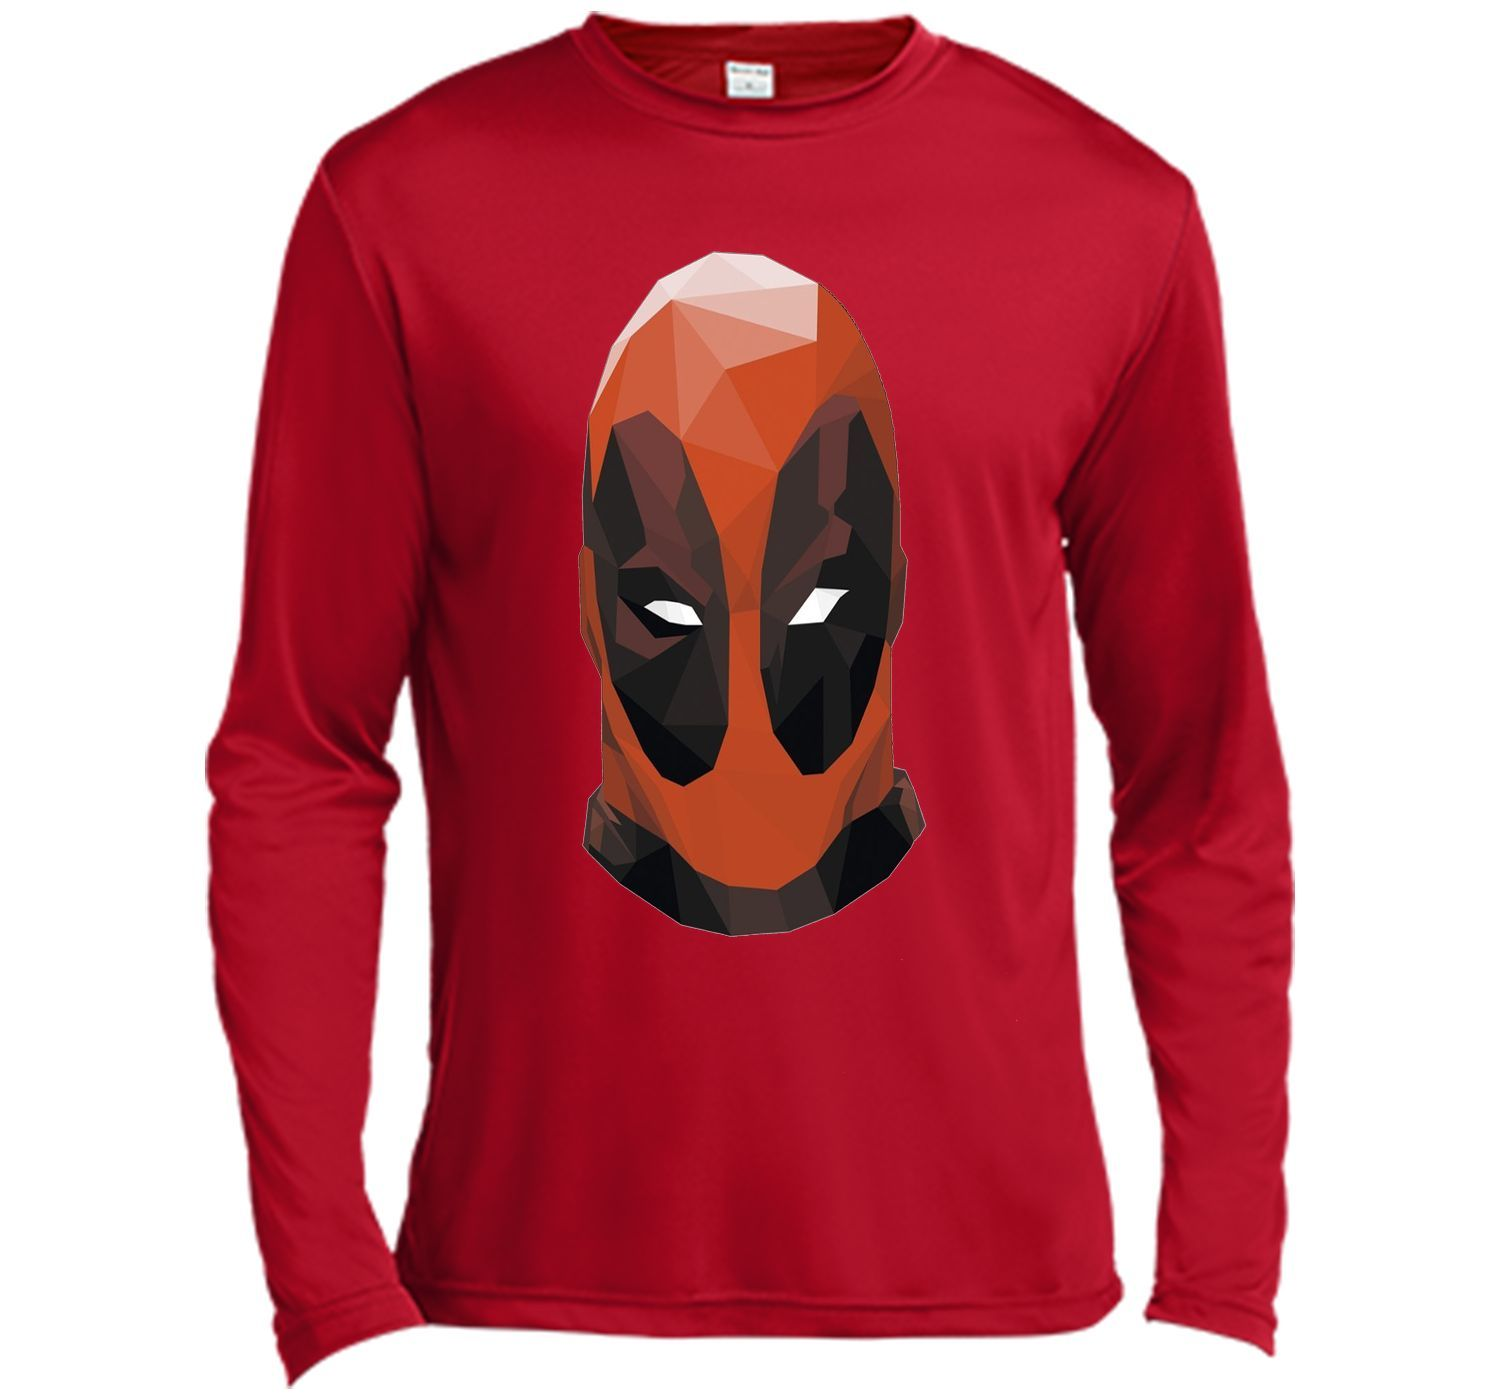 Marvel Geometric Deadpool Mask Graphic T-Shirt